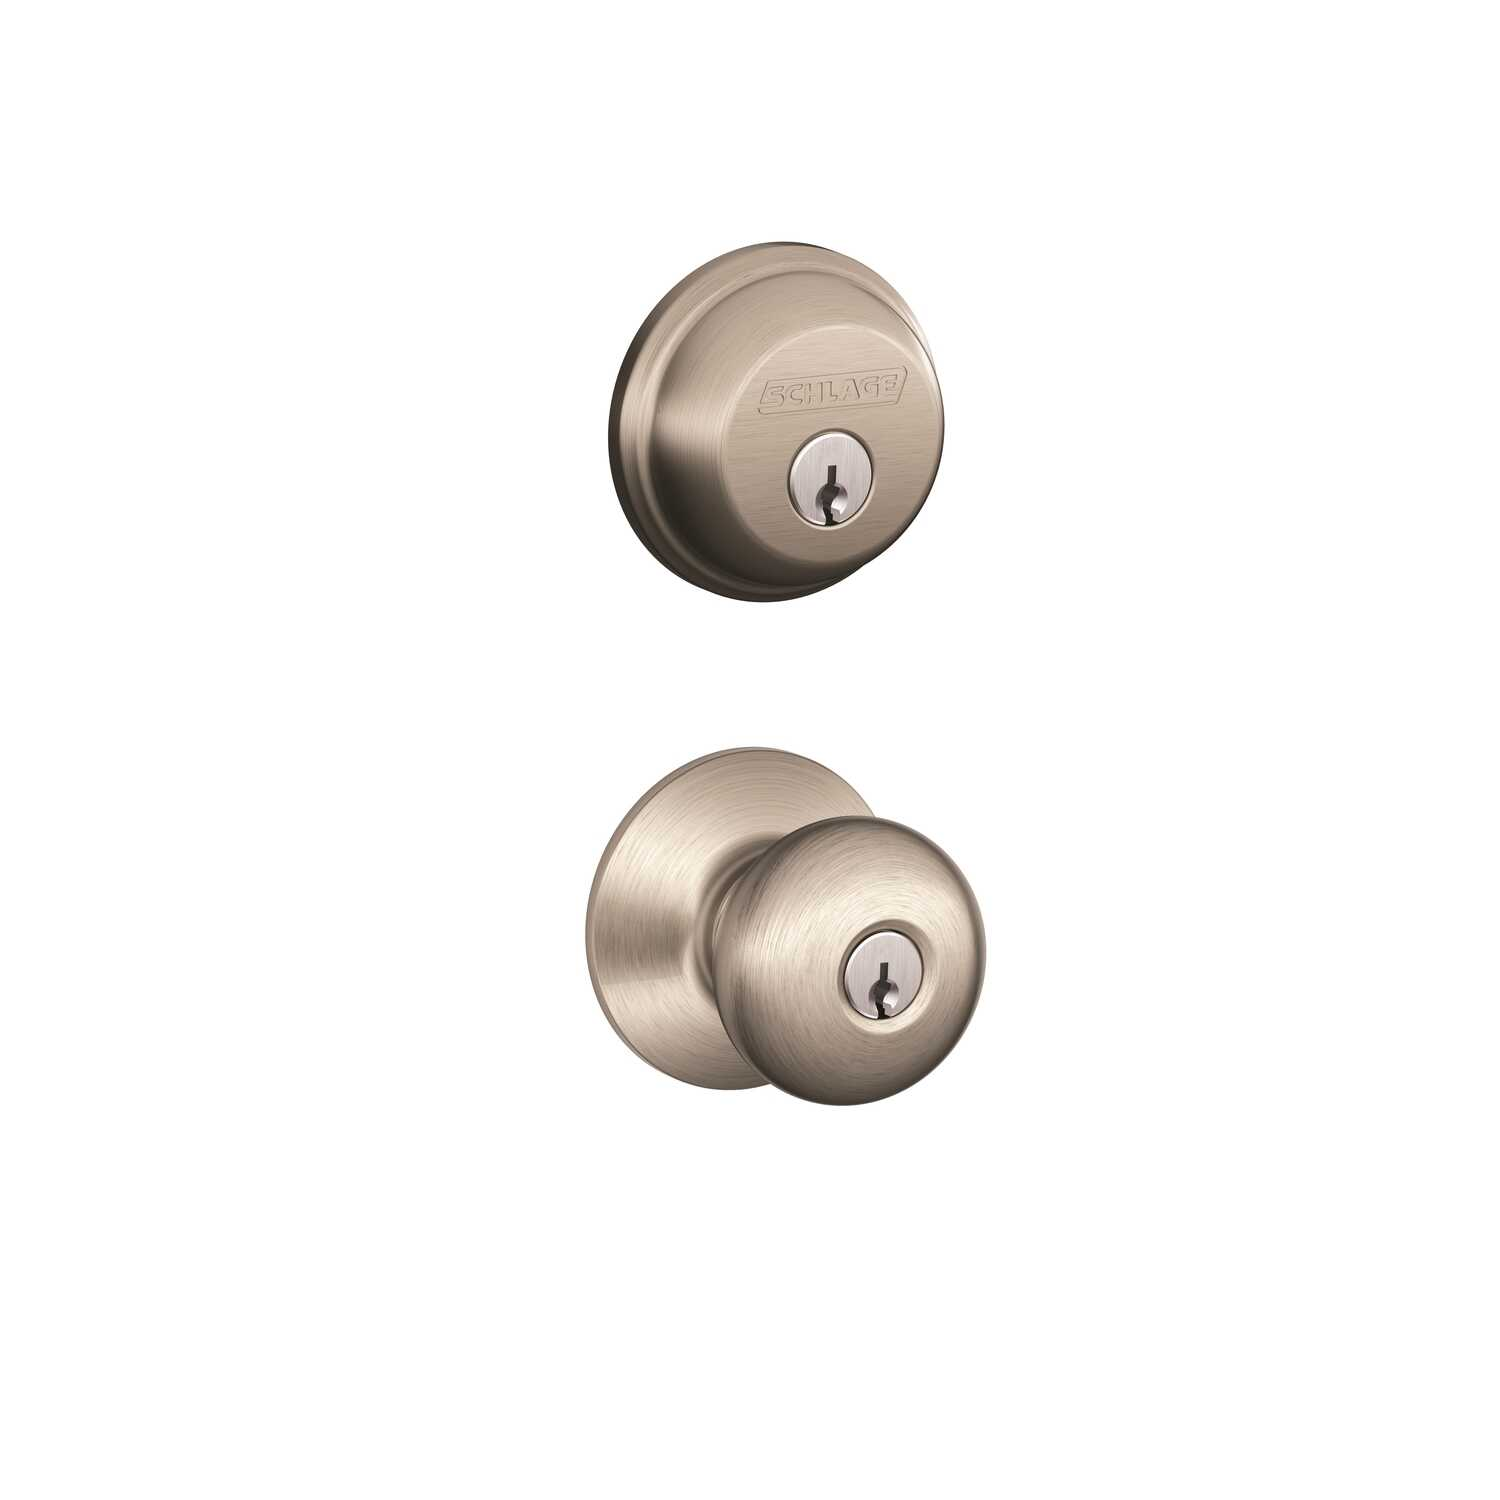 Schlage  Plymouth  Satin Nickel  Deadbolt and Entry Door Knob  ANSI Grade 2  1-3/4 in.